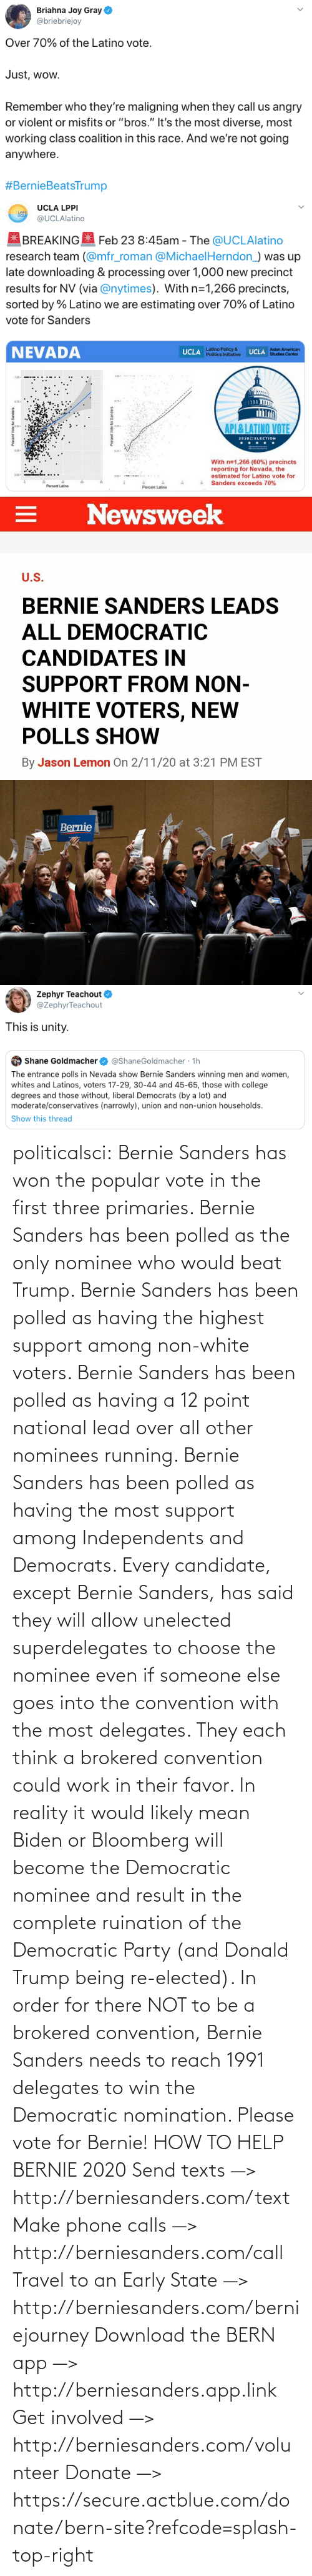 beat: politicalsci: Bernie Sanders has won the popular vote in the first three primaries. Bernie Sanders has  been polled as the only nominee who would beat Trump. Bernie Sanders  has been polled as having the highest support among non-white voters.  Bernie Sanders has been polled as having a 12 point national lead over  all other nominees running. Bernie Sanders has been polled as having the most support among Independents and Democrats.  Every candidate, except Bernie Sanders, has said they will allow  unelected superdelegates to choose the nominee even if someone else goes  into the convention with the most delegates. They each think a brokered  convention could work in their favor. In  reality it would likely mean Biden or Bloomberg will become the  Democratic nominee and result in the complete ruination of the  Democratic Party (and Donald Trump being re-elected). In order for there  NOT to be a brokered  convention, Bernie Sanders needs to reach 1991 delegates to win the  Democratic  nomination. Please vote for Bernie!  HOW TO HELP BERNIE 2020 Send texts —> http://berniesanders.com/text  Make phone calls —> http://berniesanders.com/call  Travel to an Early State —> http://berniesanders.com/berniejourney  Download the BERN app —> http://berniesanders.app.link  Get involved —> http://berniesanders.com/volunteer Donate —> https://secure.actblue.com/donate/bern-site?refcode=splash-top-right